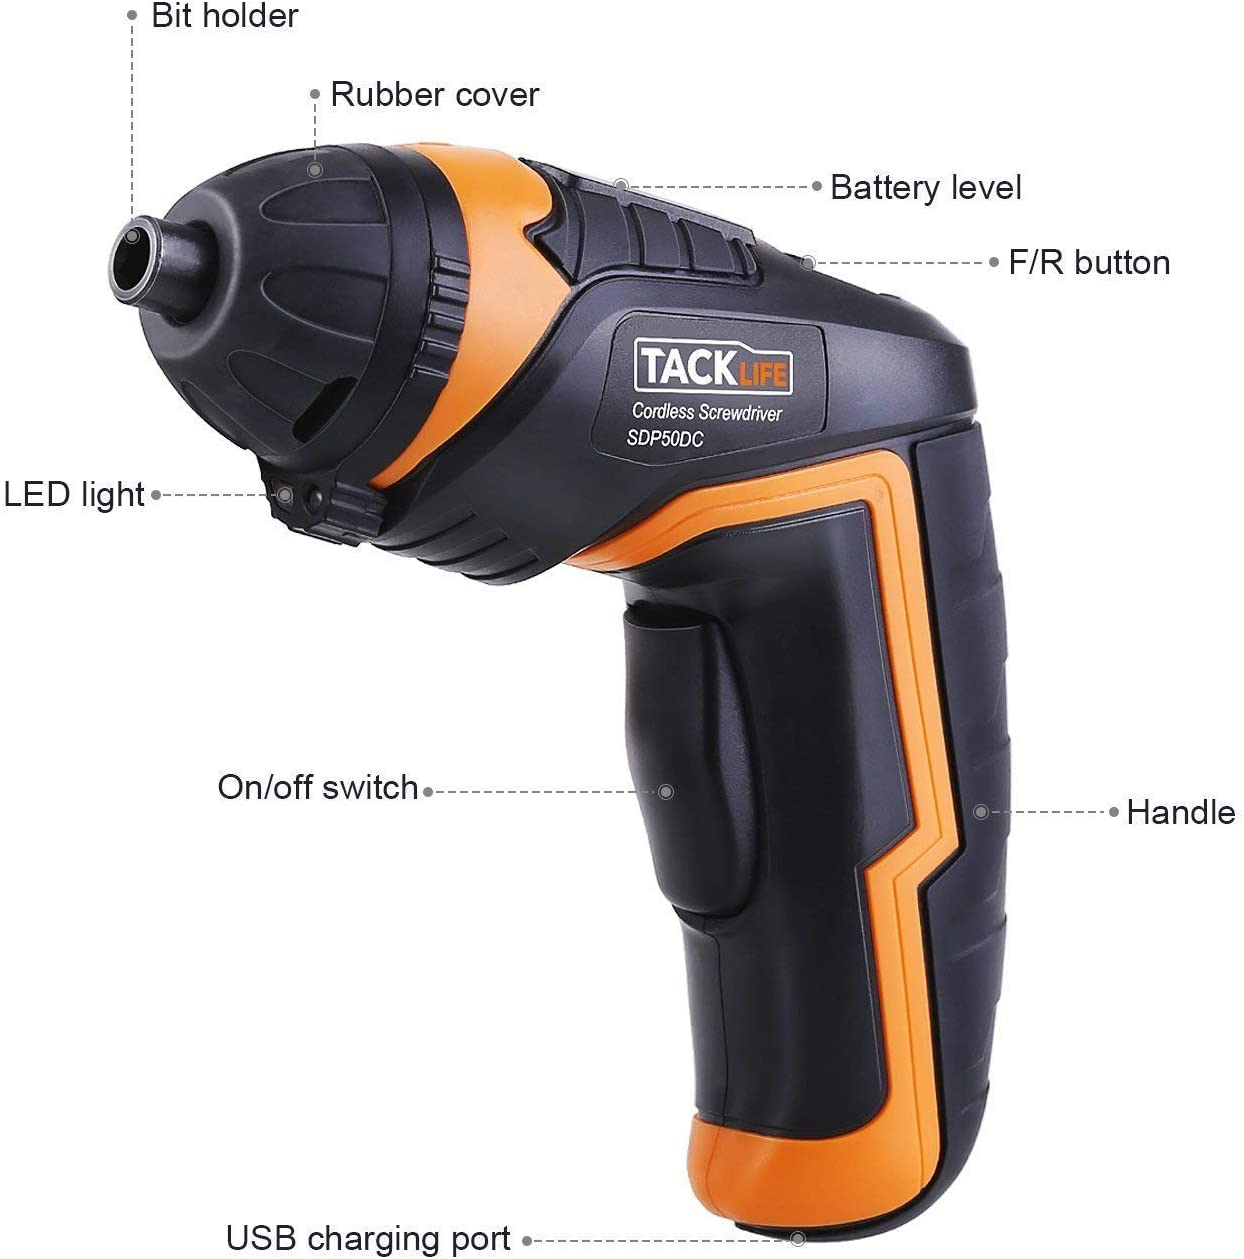 Cordless Screwdriver, TACKLIFE Electric Screwdriver, 4V MAX 2000mAh Li-ion with Battery Indicator, 31 Free Accessories, USB Rechargeable, Lightweight ...